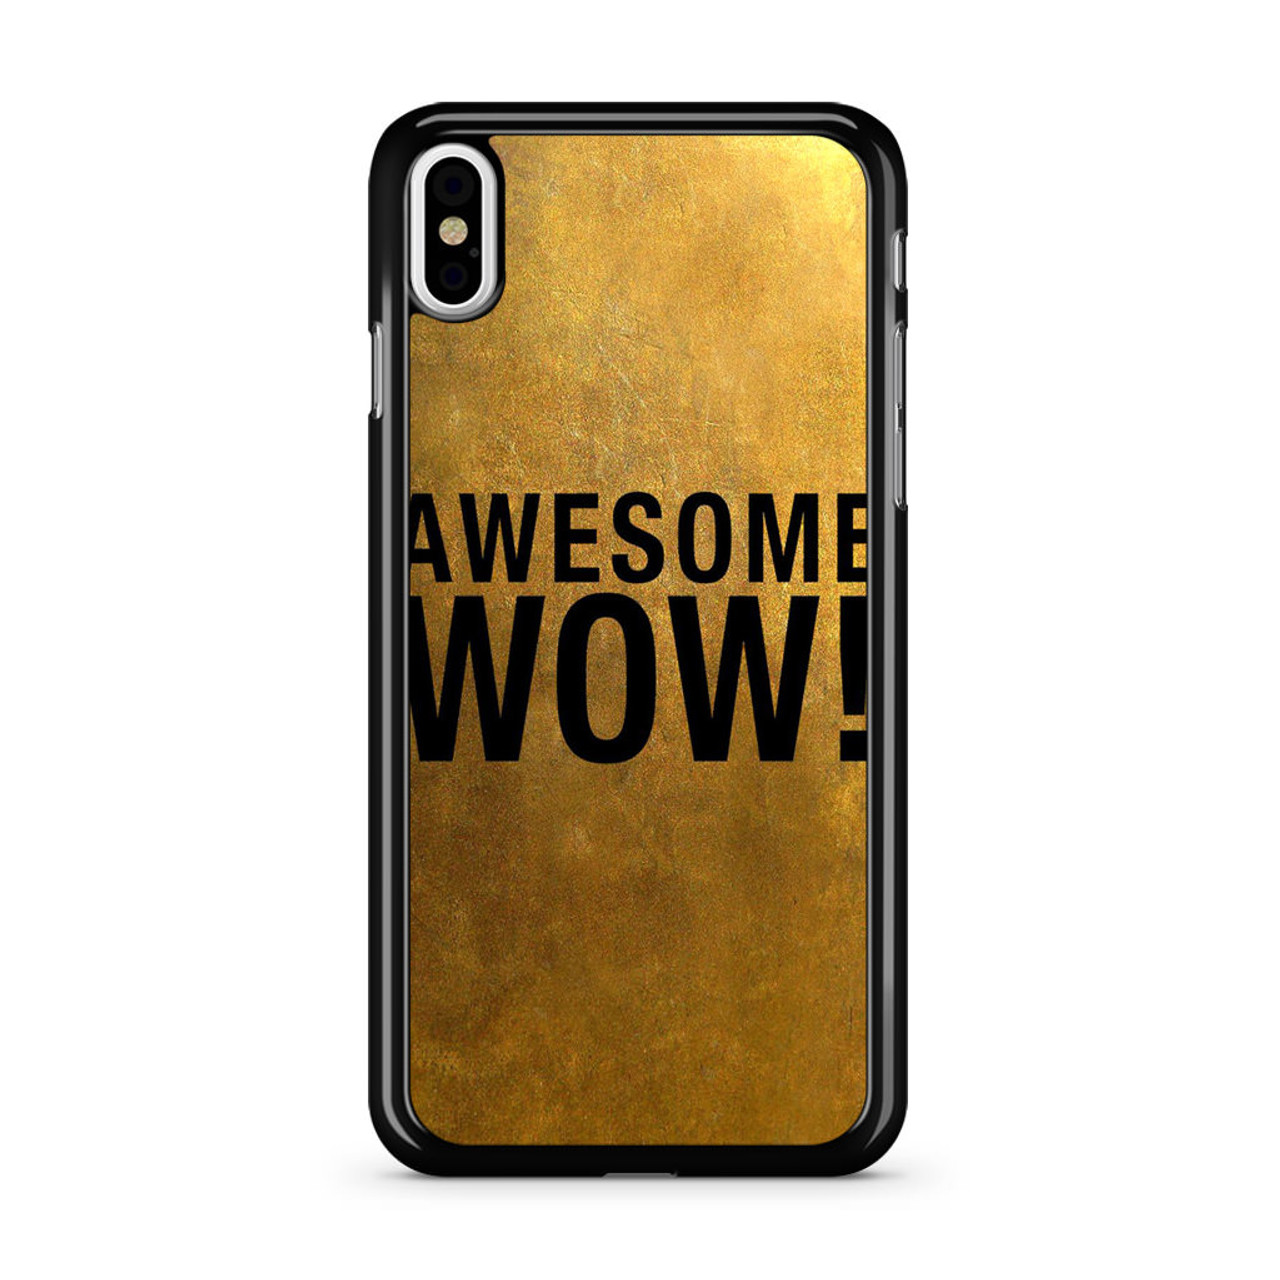 quality design 9102b c819a Awesome Wow Hamilton iPhone X Case